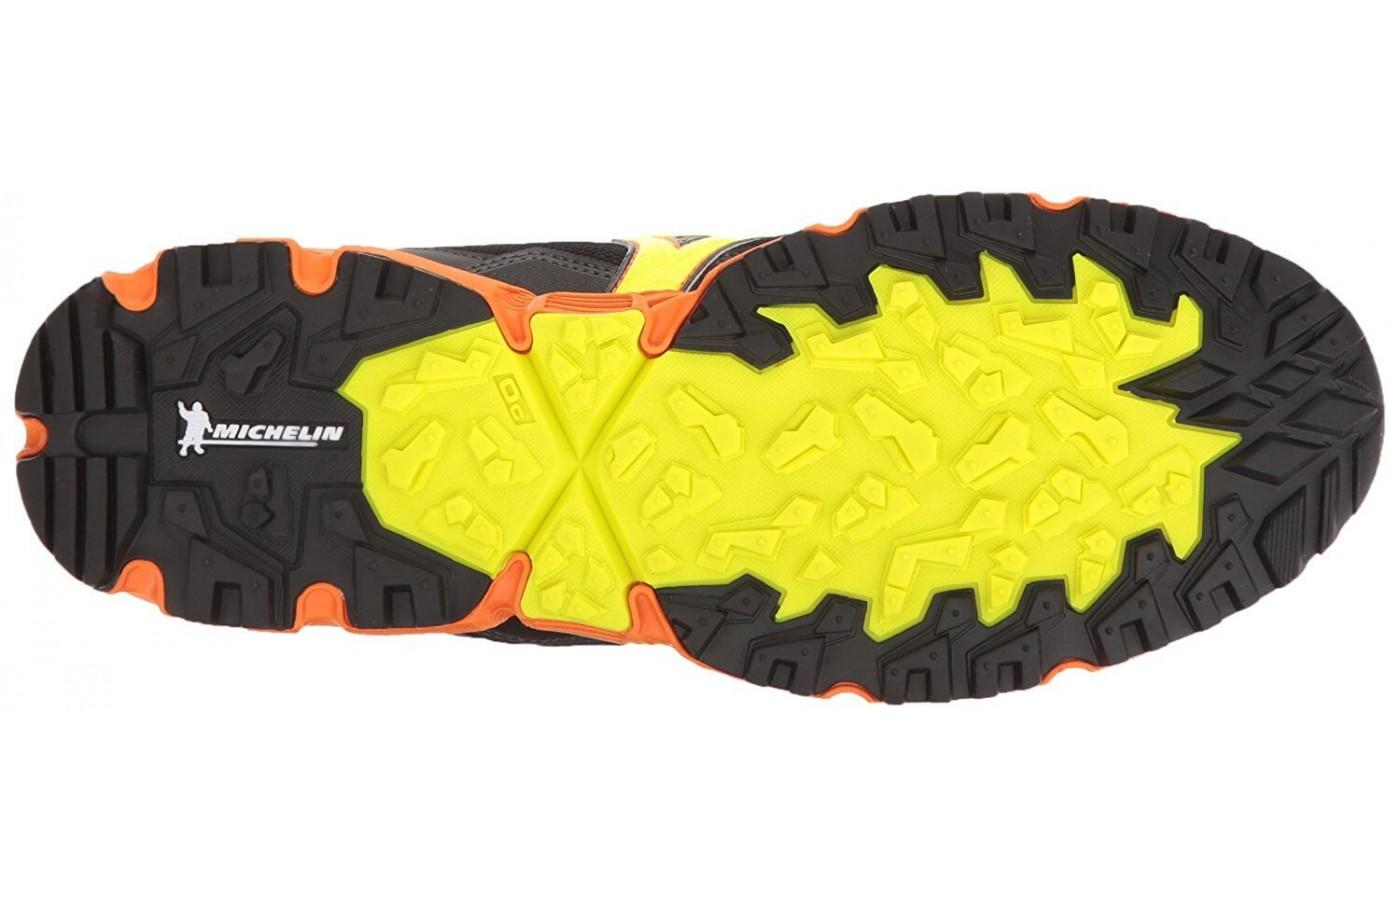 The outsole features Michelin rubber and aggressive lugs.